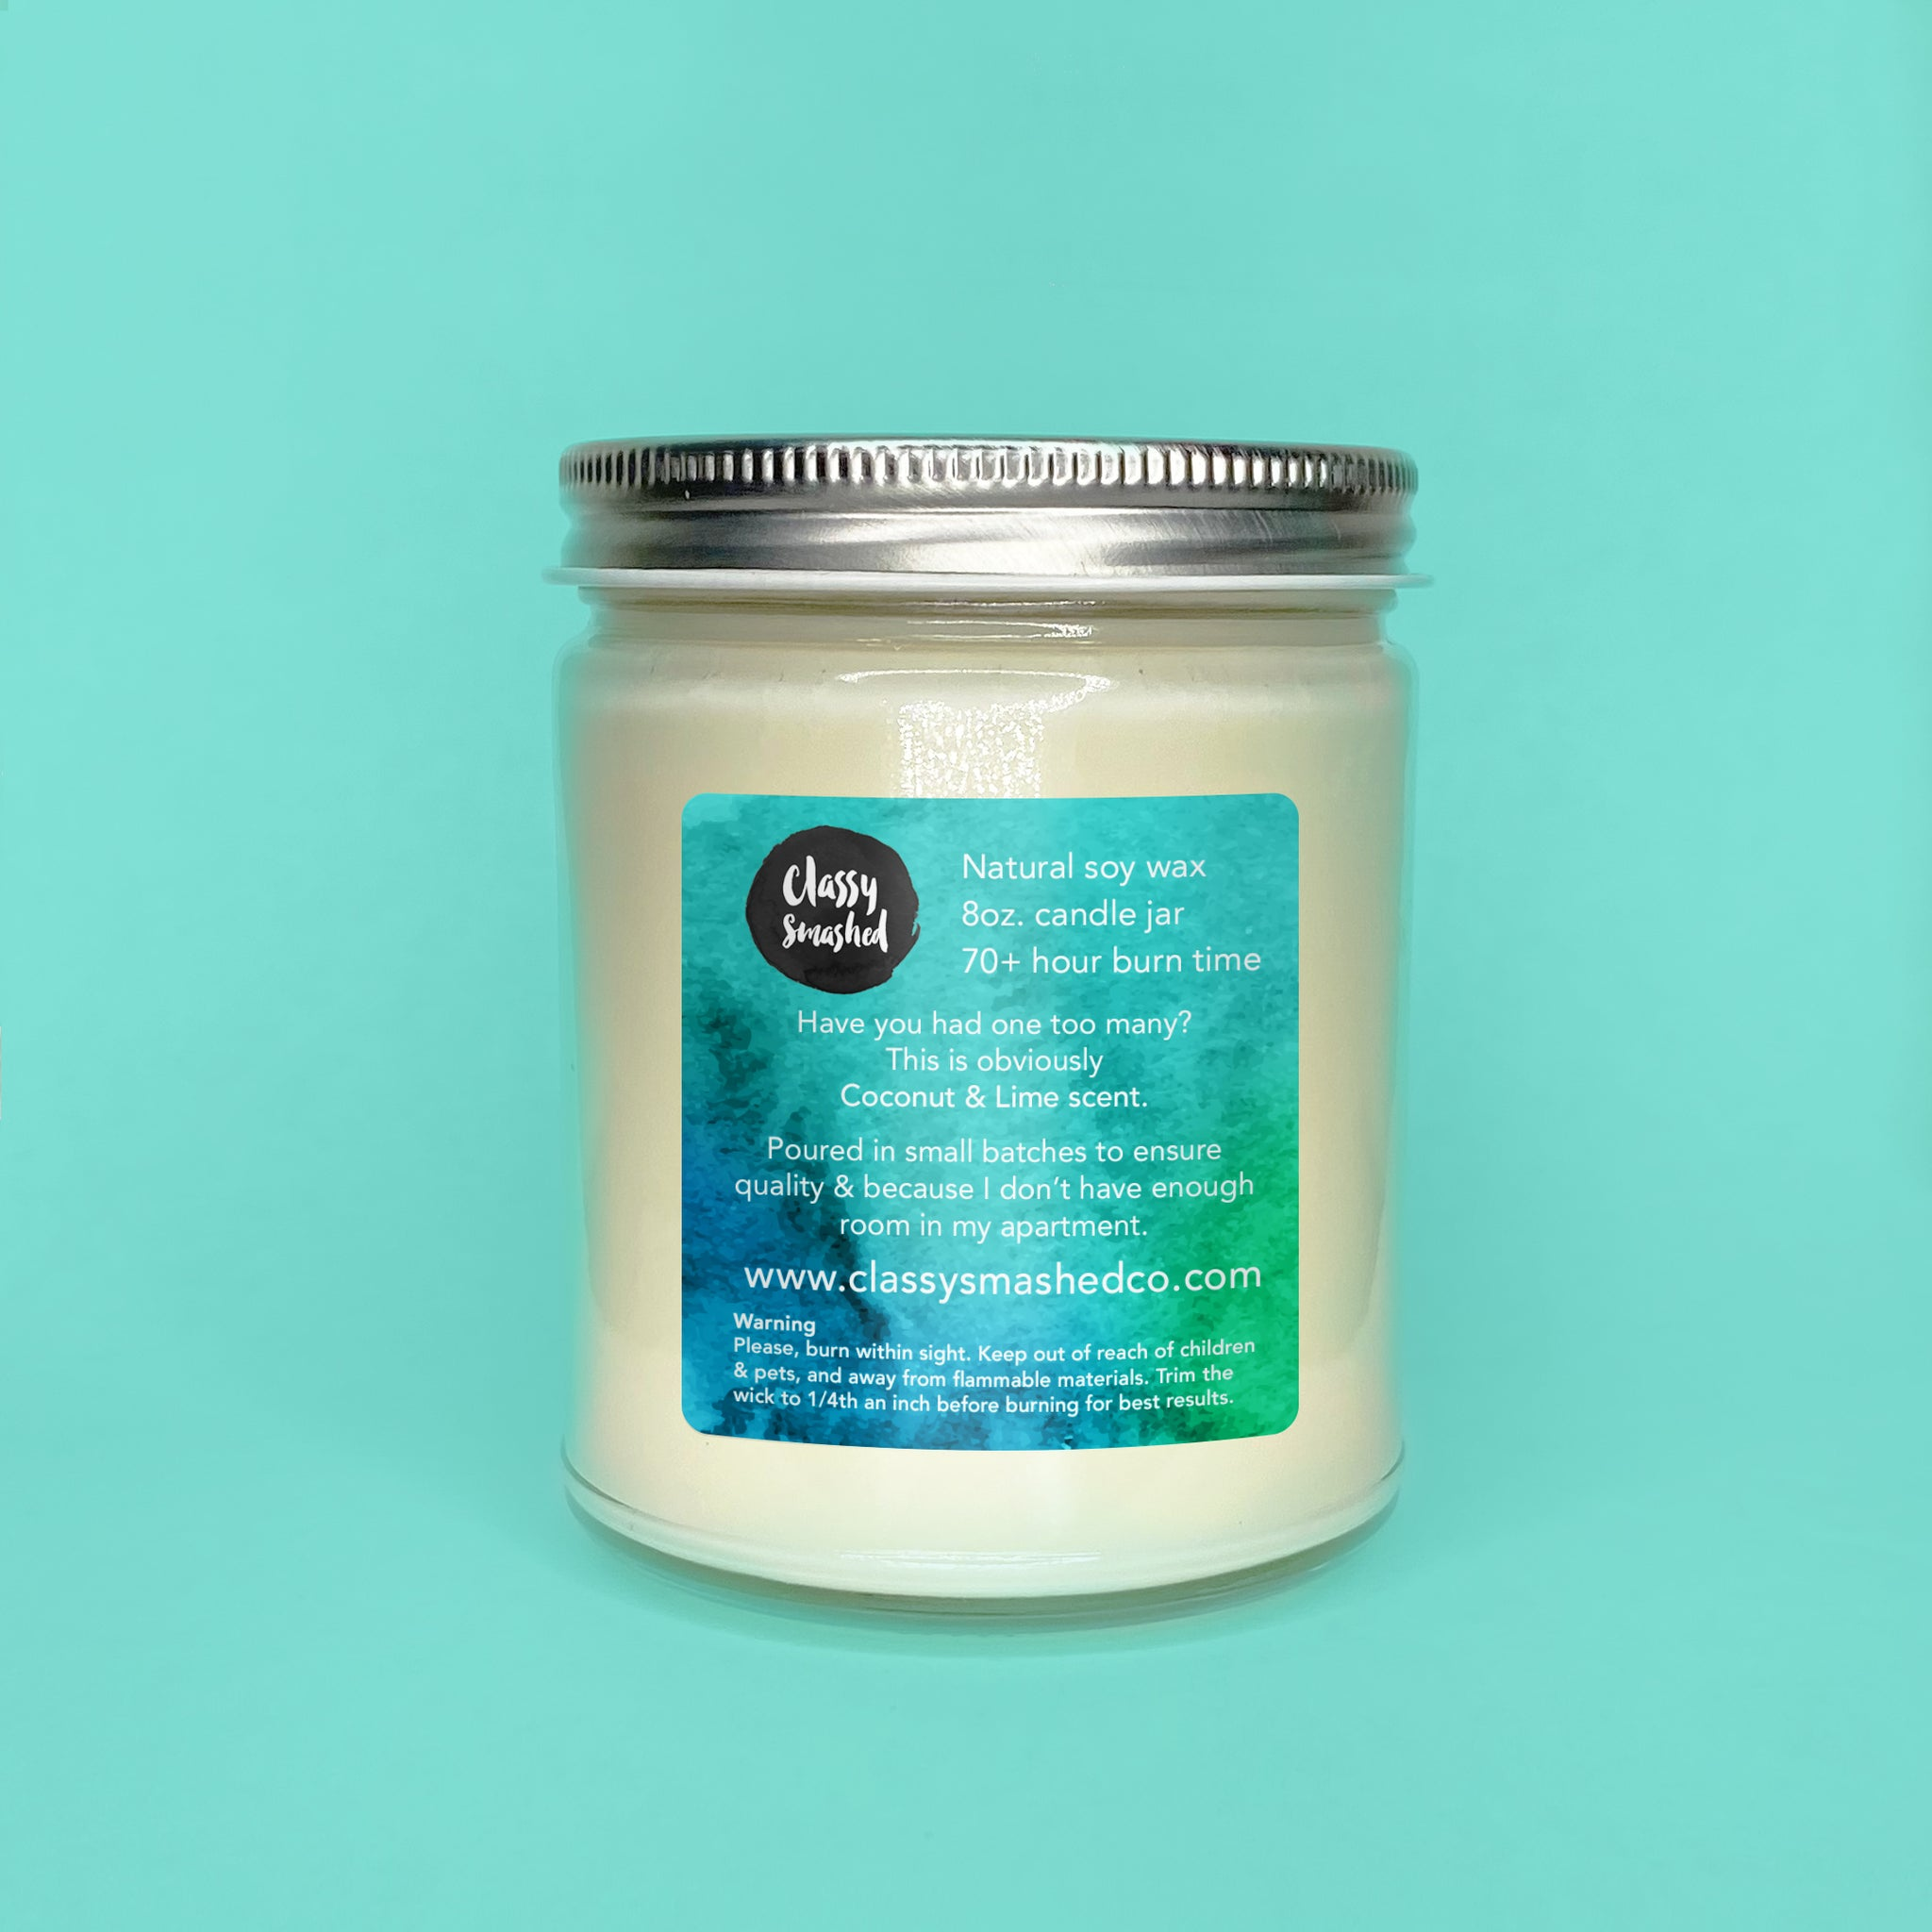 Glen Coconut || Blue Coconut & Lime 8oz Jar